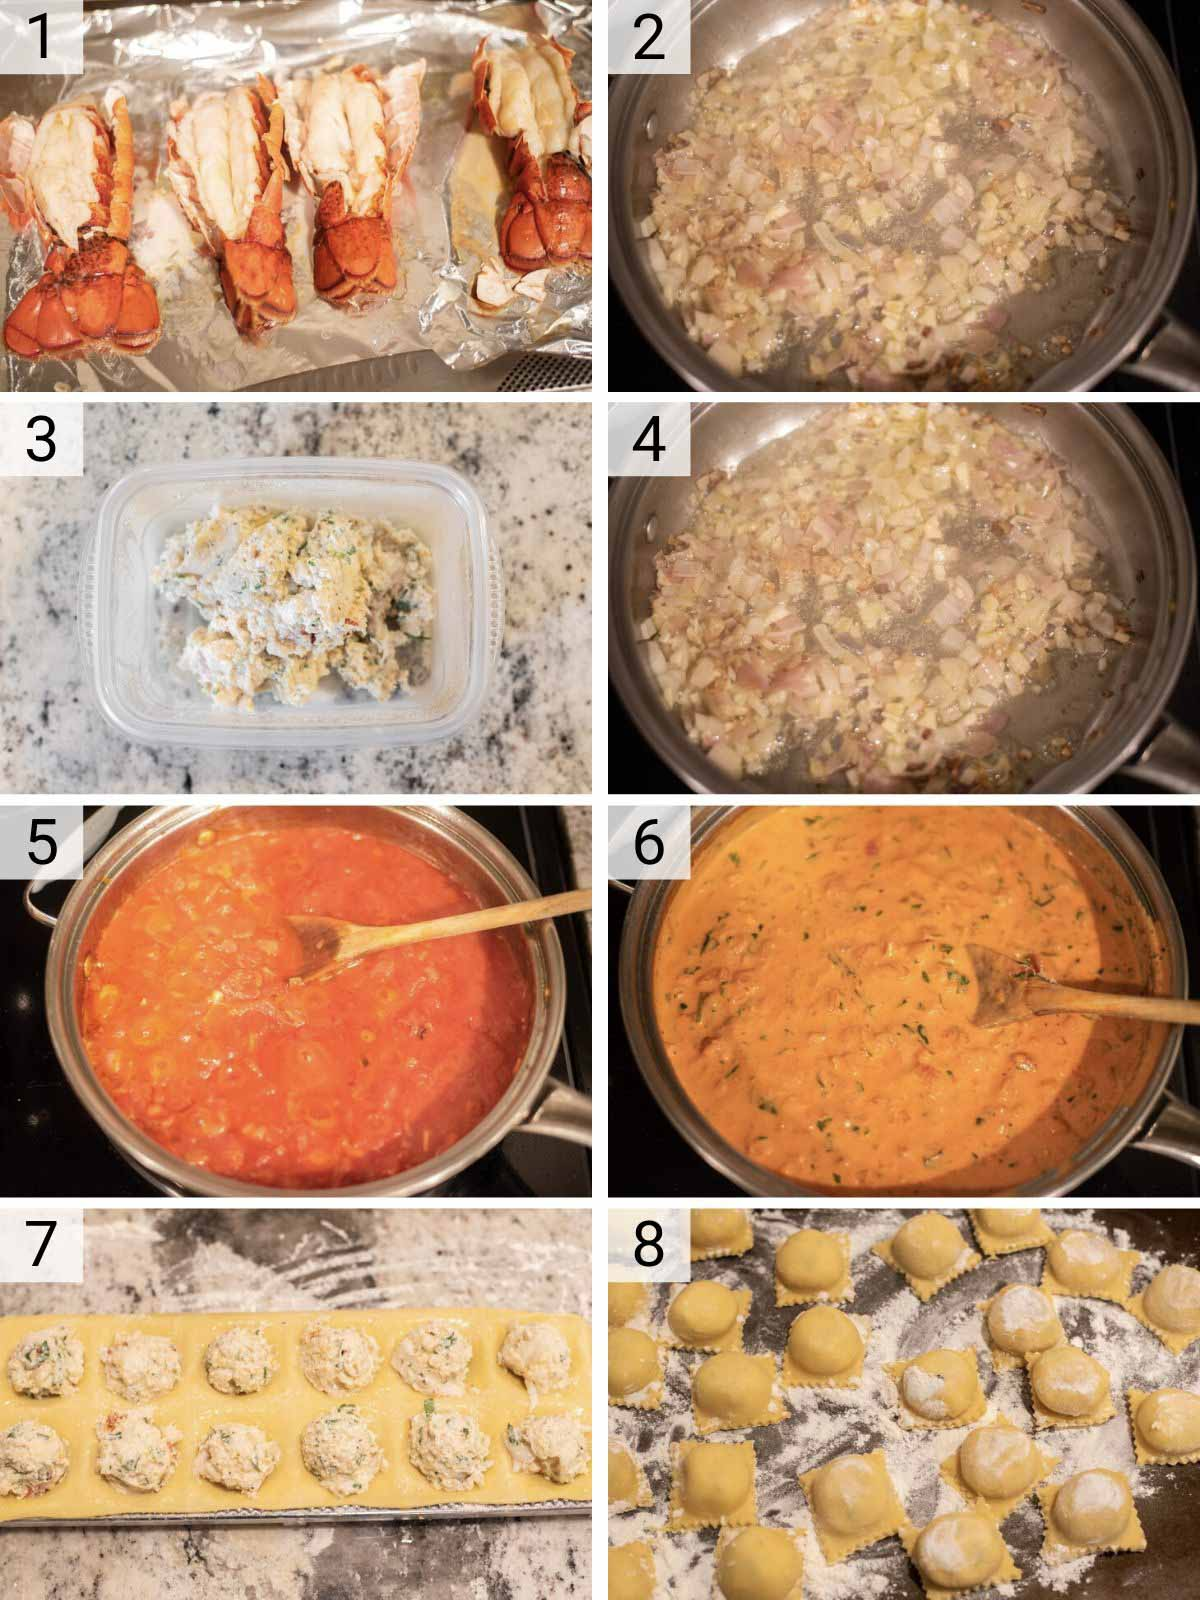 process shots of how to make lobster ravioli